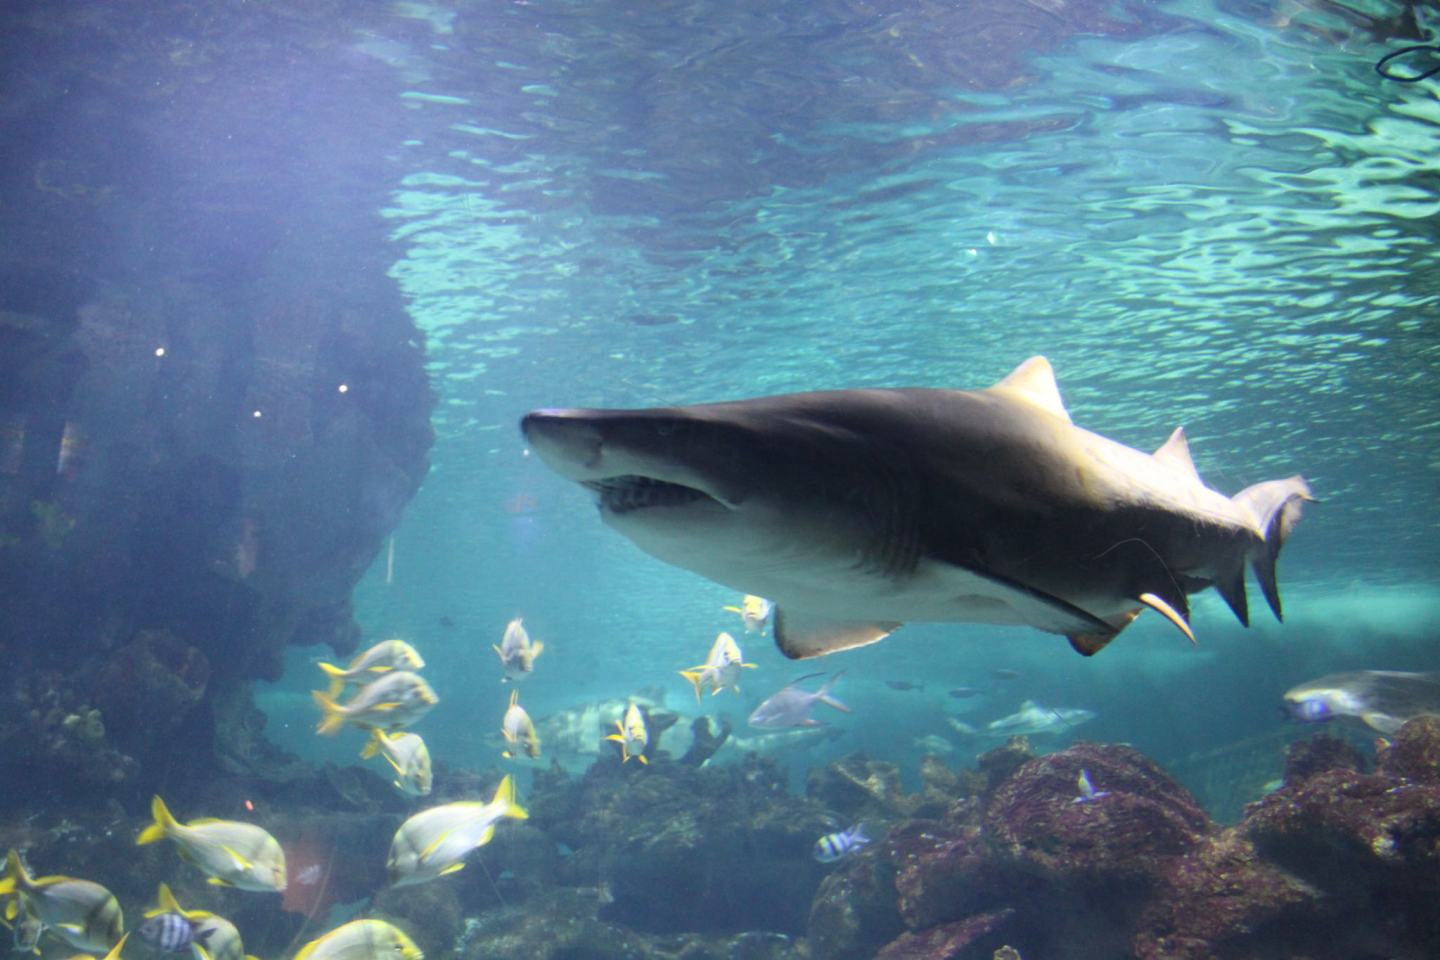 Blue Planet Aquarium: A Splashtacular Underwater Adventure: